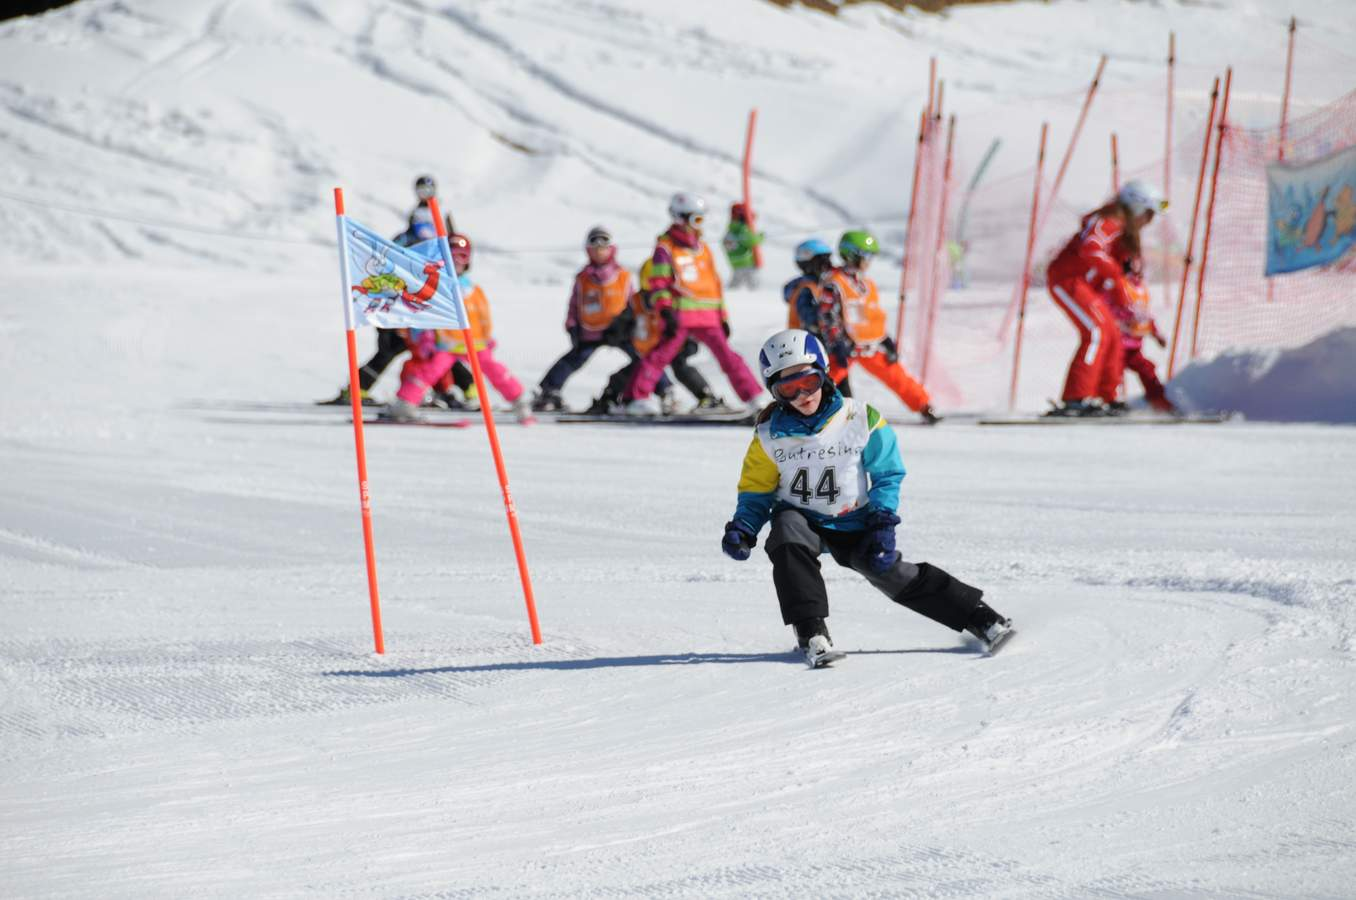 http://northbayskiracingclub.com/wp-content/uploads/2018/09/recreational-ski-racing-1.jpg